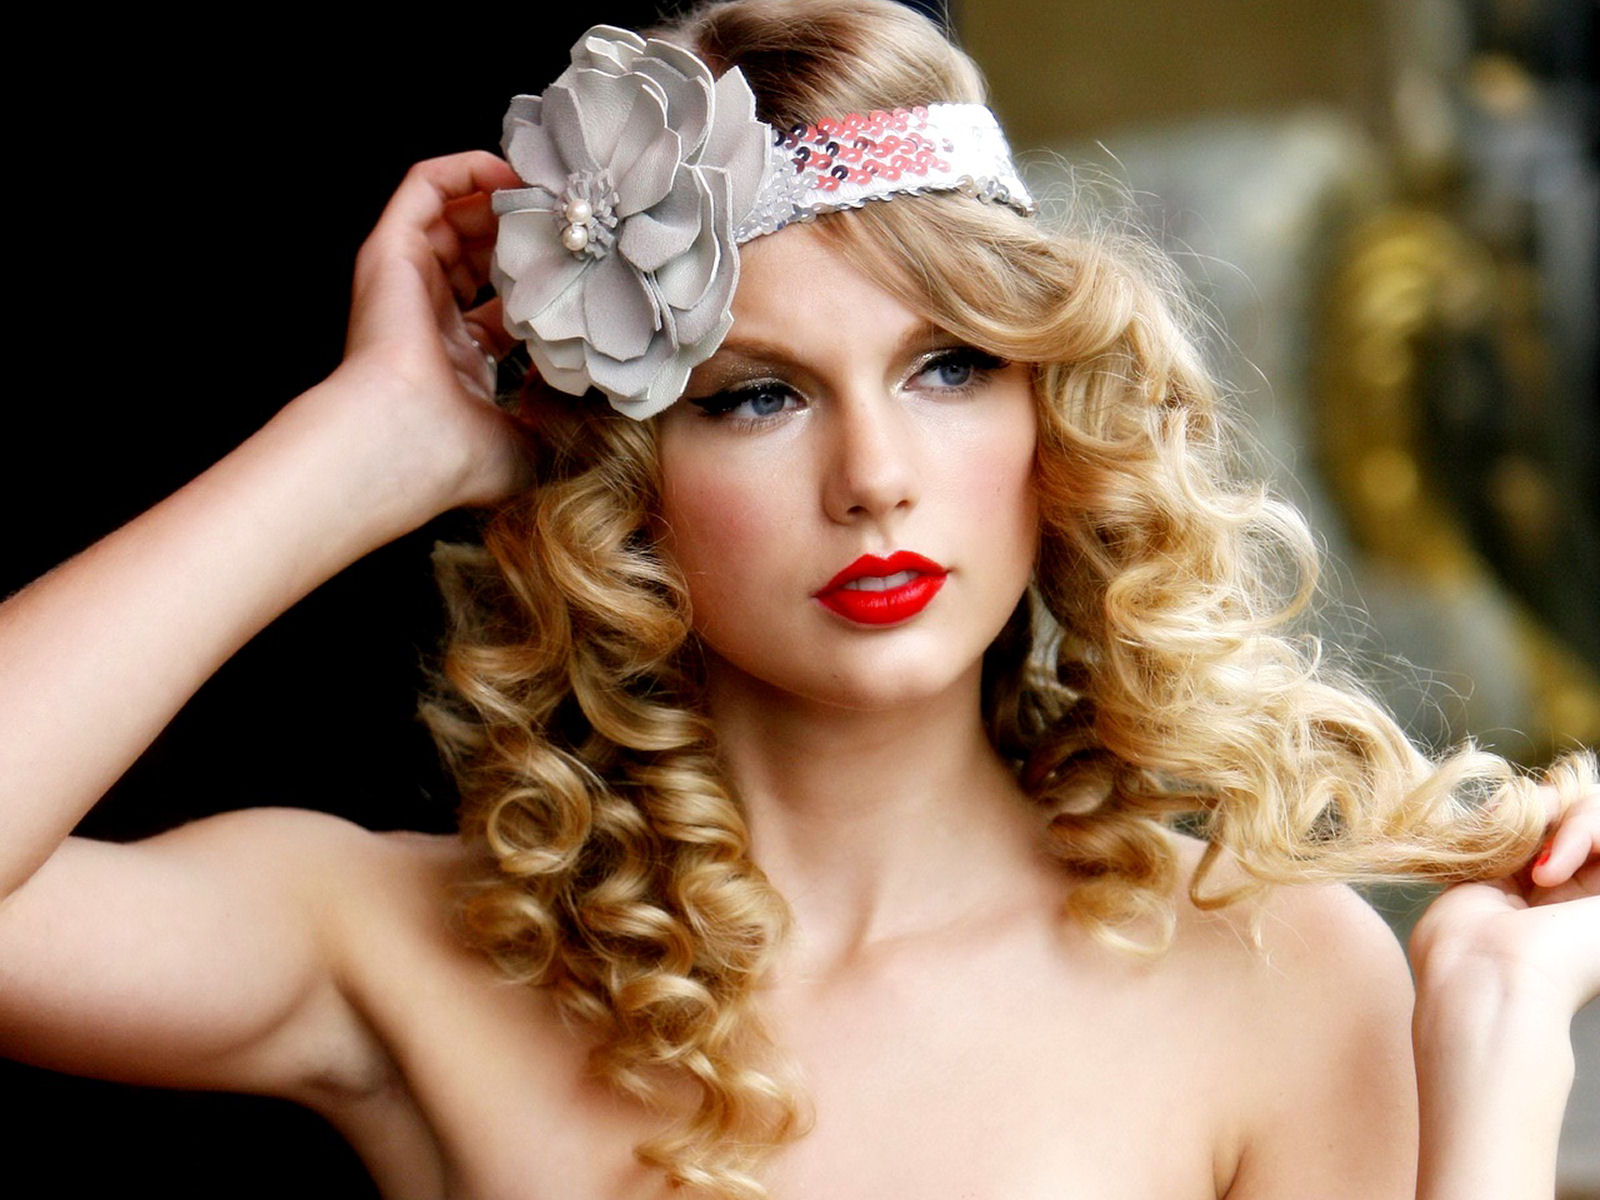 http://3.bp.blogspot.com/-UNhqhOLcYzU/T7GWhjYB9uI/AAAAAAAAAt8/Gl3MzJy58Ek/s1600/The-best-top-desktop-taylor-swift-wallpapers-taylor-swift-wallpaper-taylor-swift-background-hd-6.jpg